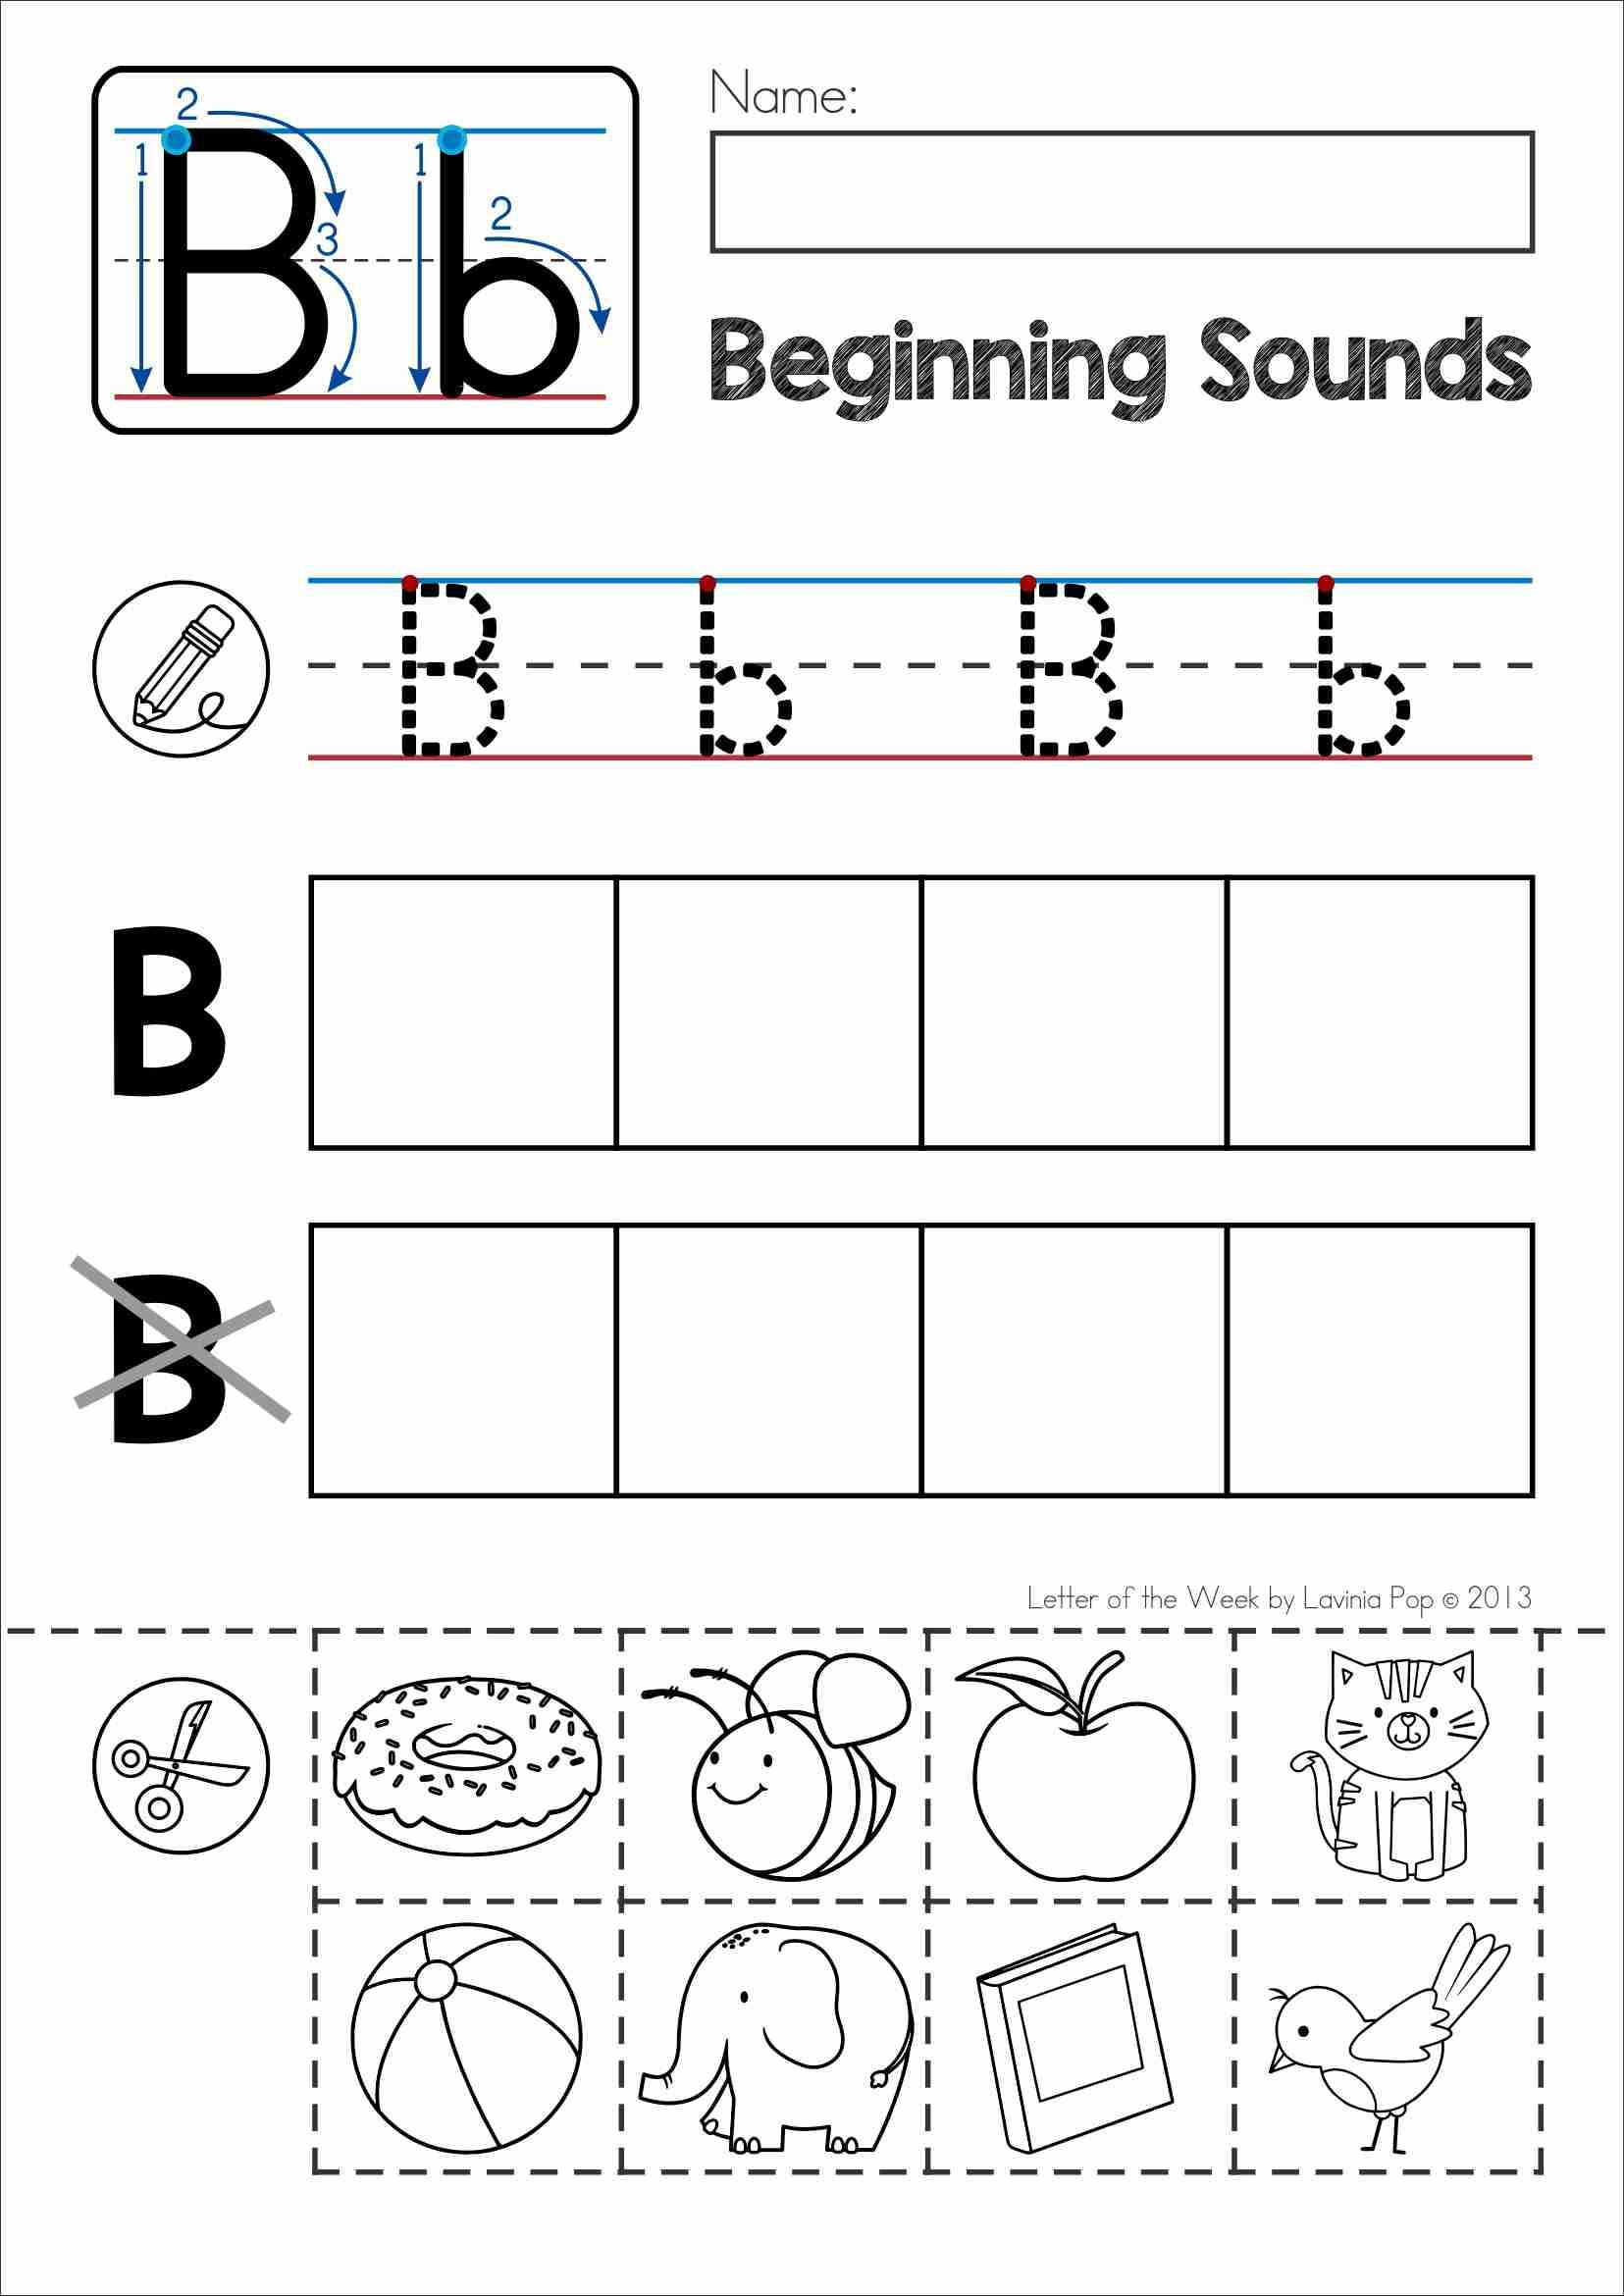 worksheet Initial Sound Worksheets free phonics letter of the week b beginning sounds cut and paste paste